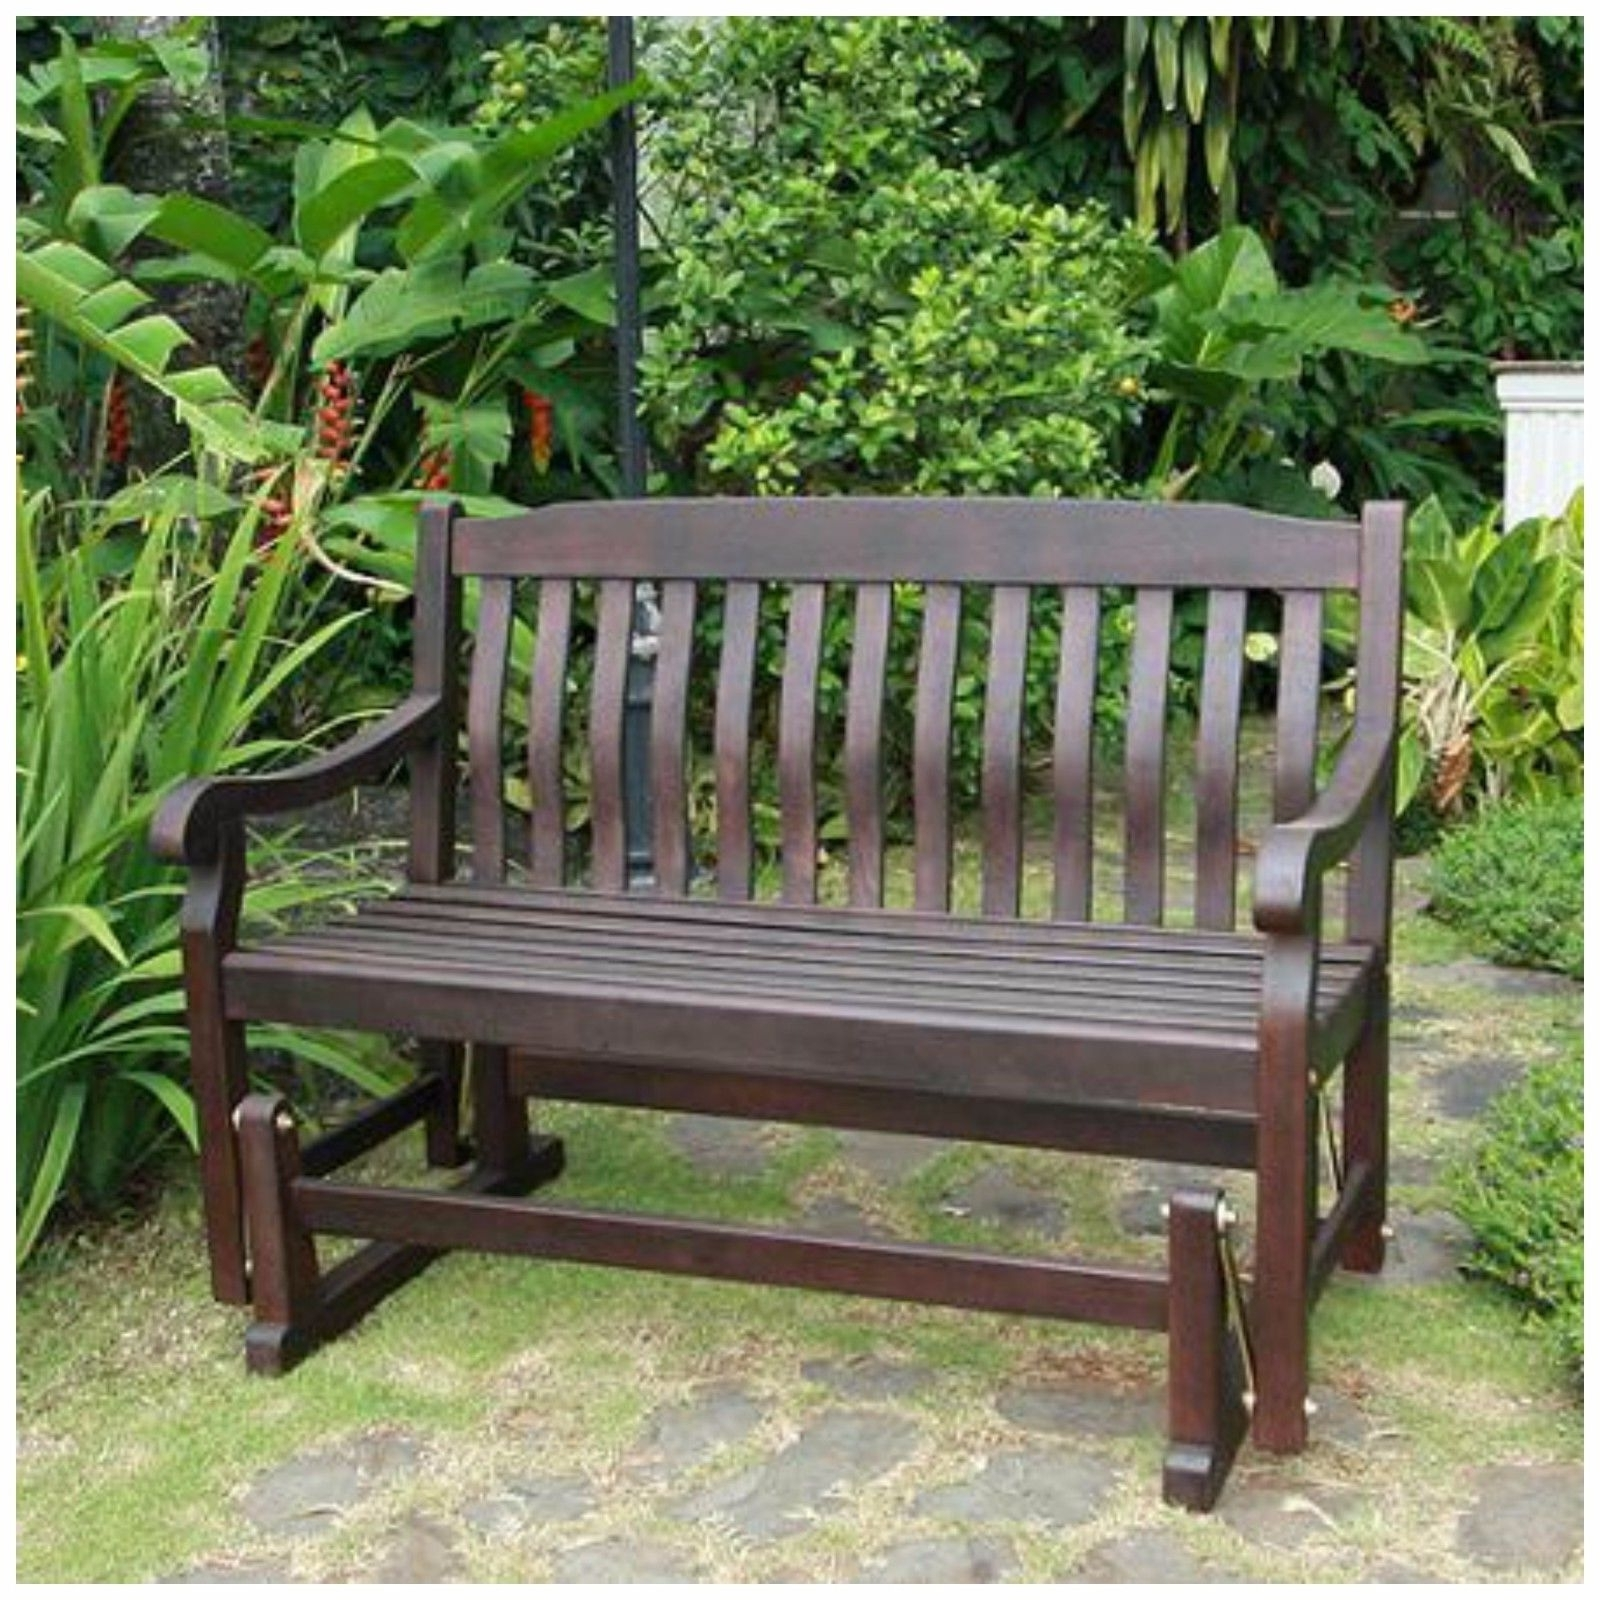 Patio Furniture Rocking Benches For Popular Double Lawn Glider Swing Seatlatform Yard Chair Bench Treated Patio (View 13 of 20)